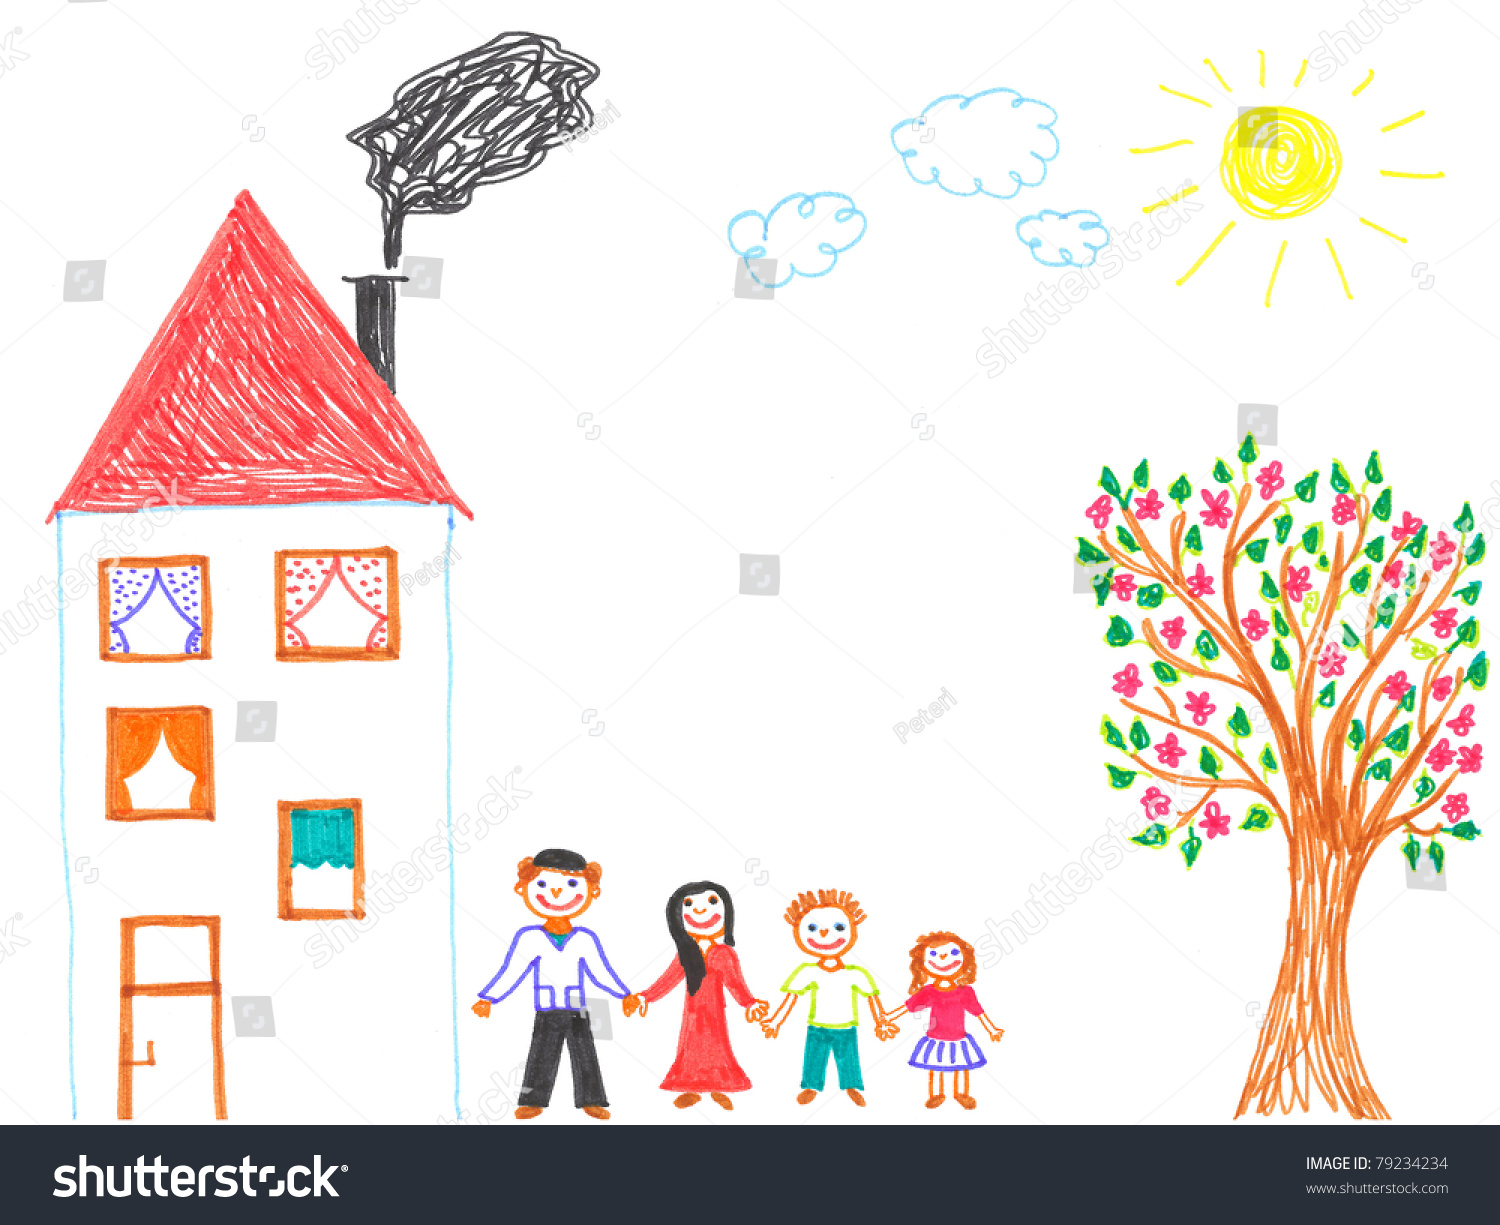 Childs drawing happy family father mother stock illustration 79234234 shutterstock - Houses for families withchild ...